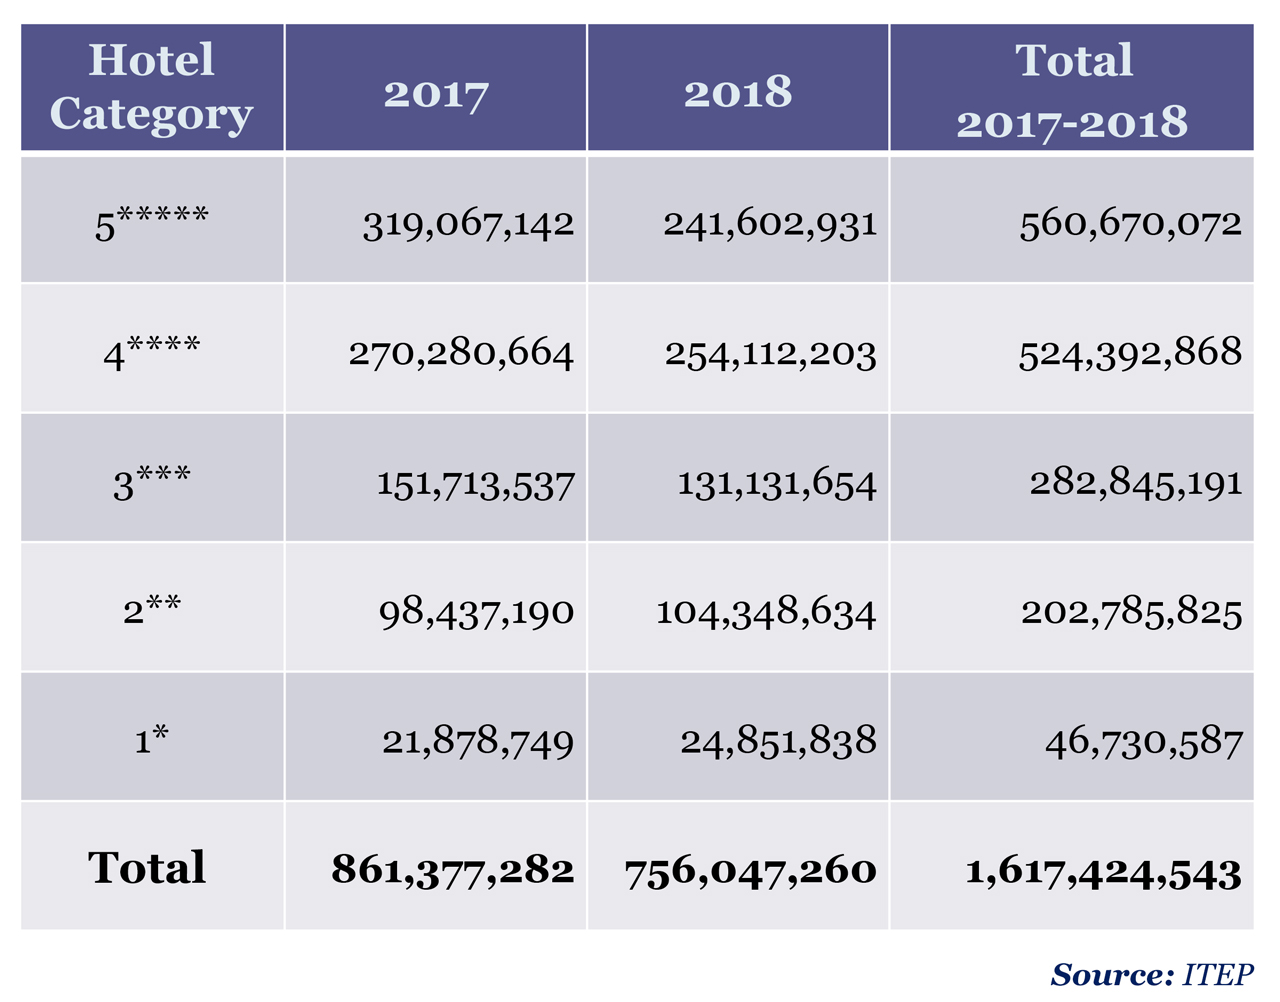 Total renovation cost per hotel category, 2017/2018.